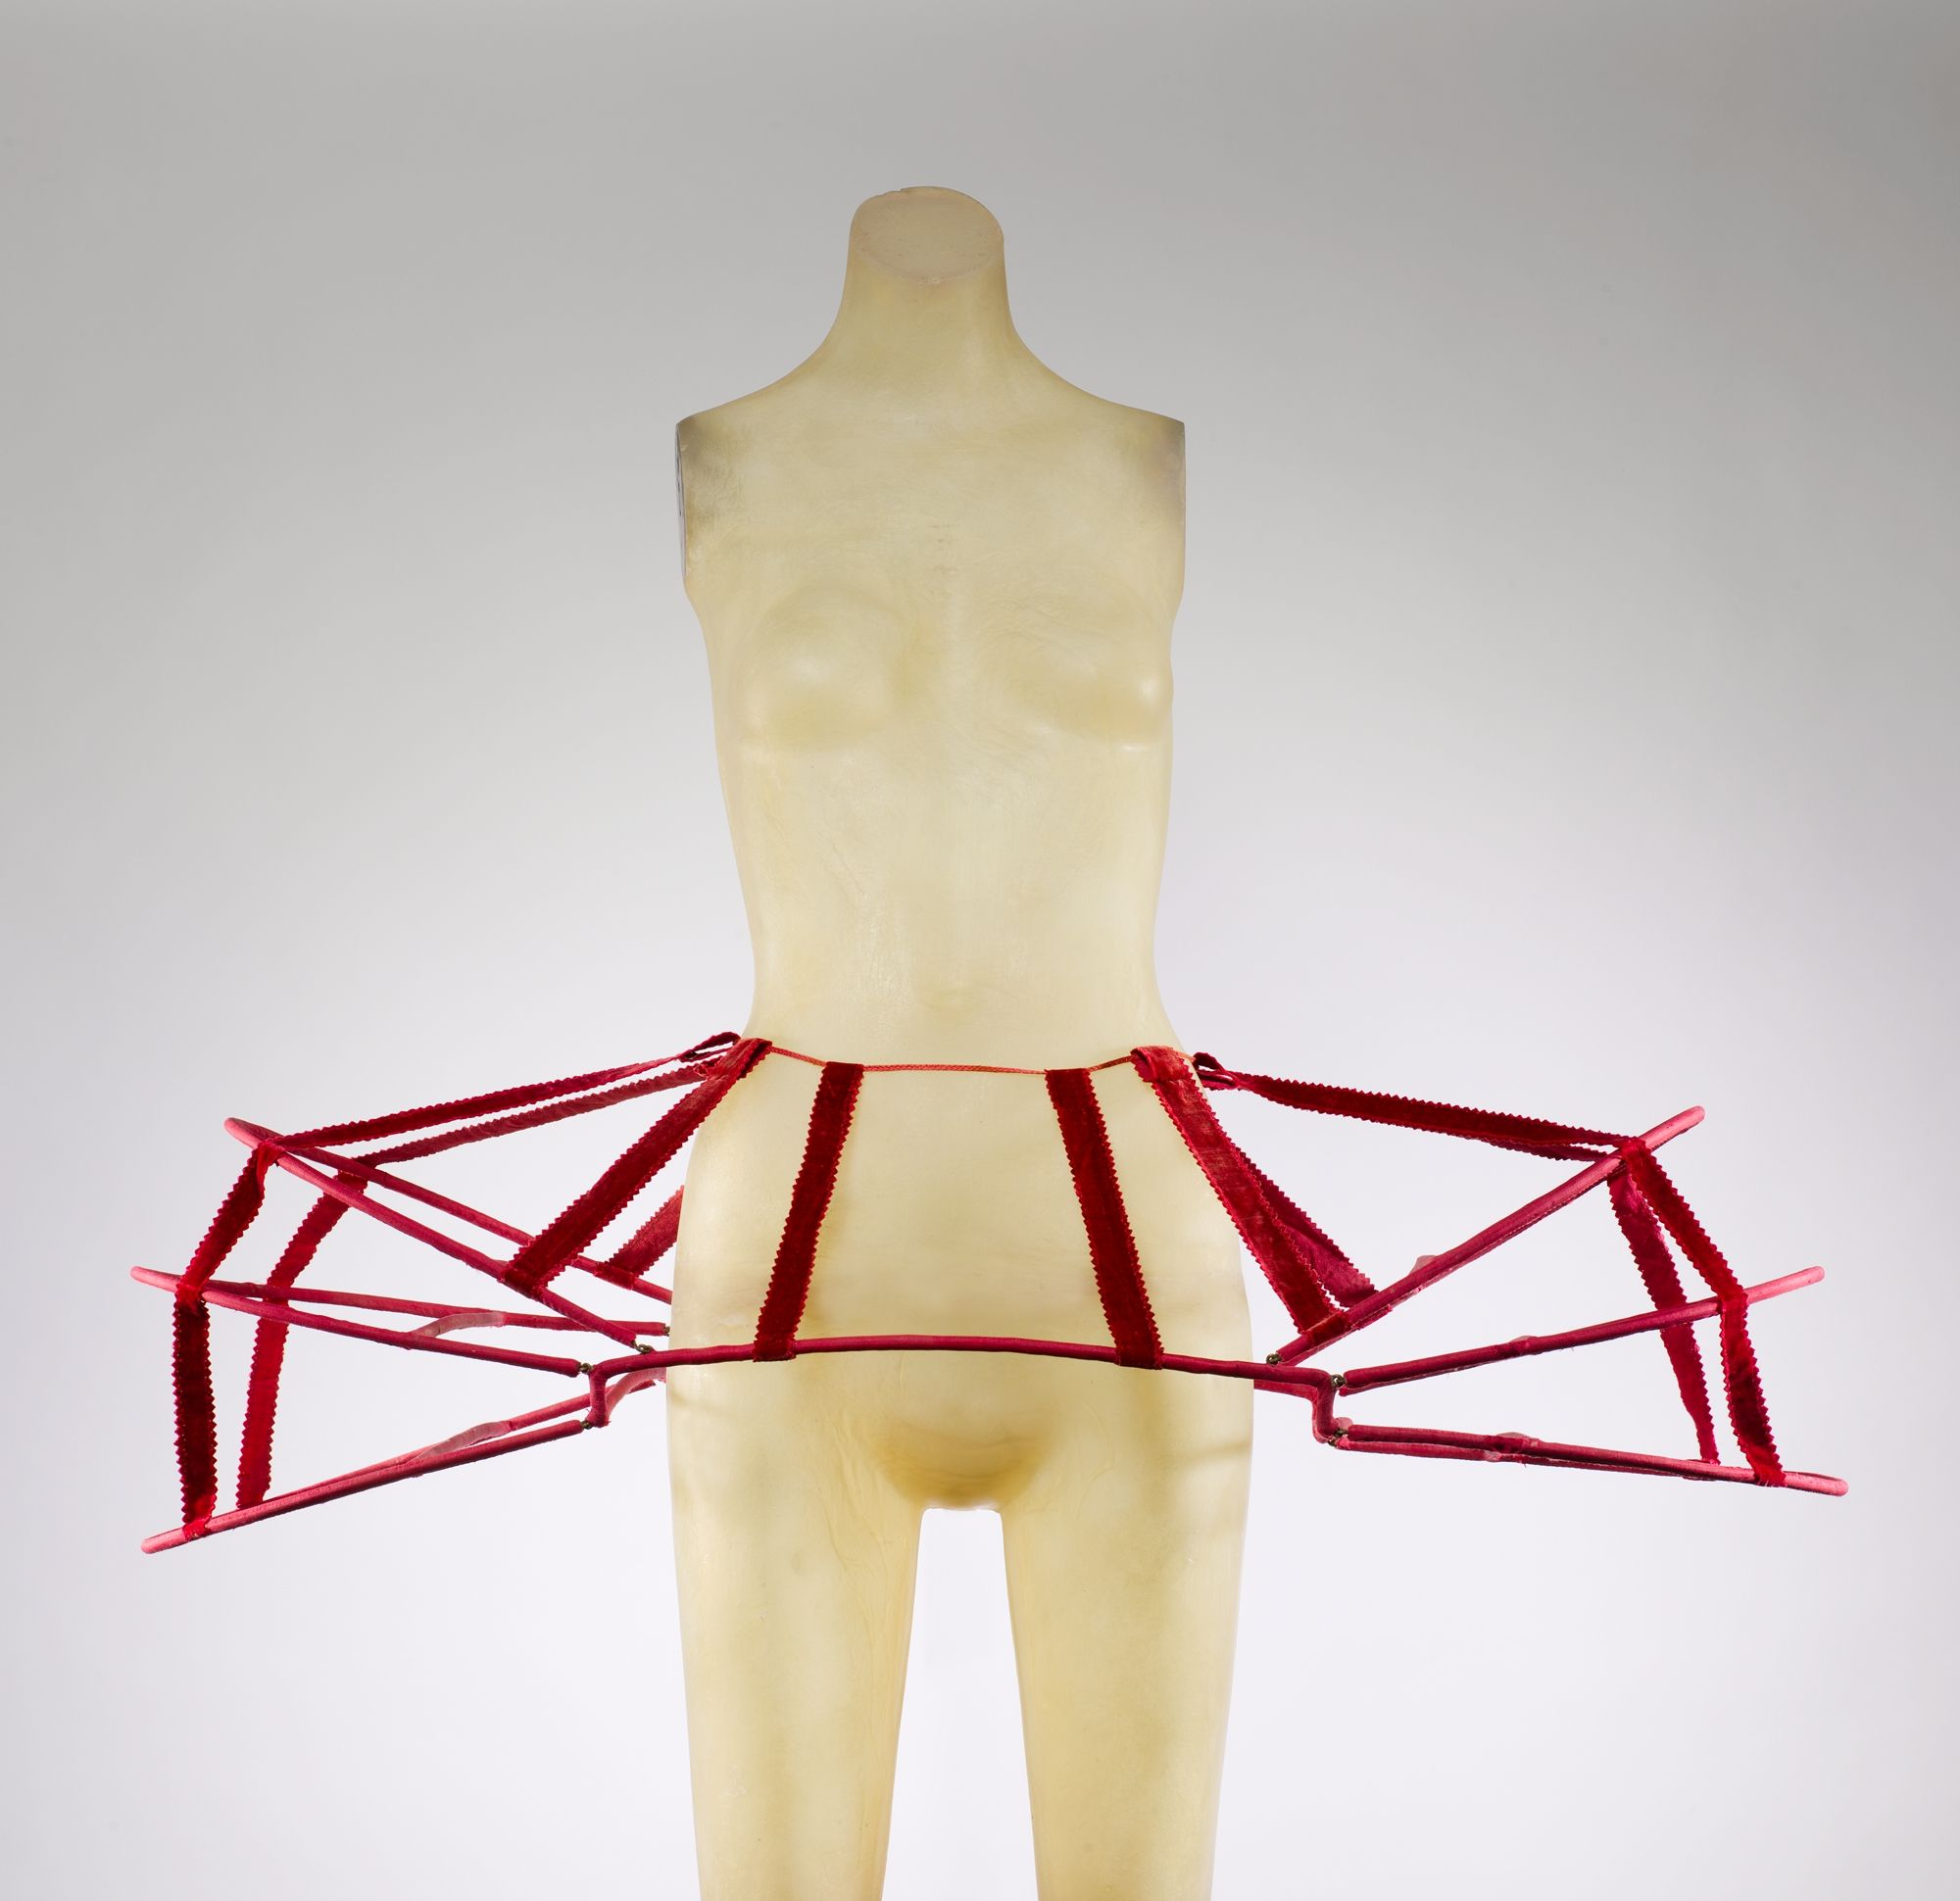 French panniers from the late 18th century made of silk cane and metal. Worn by women to give their gowns shape.